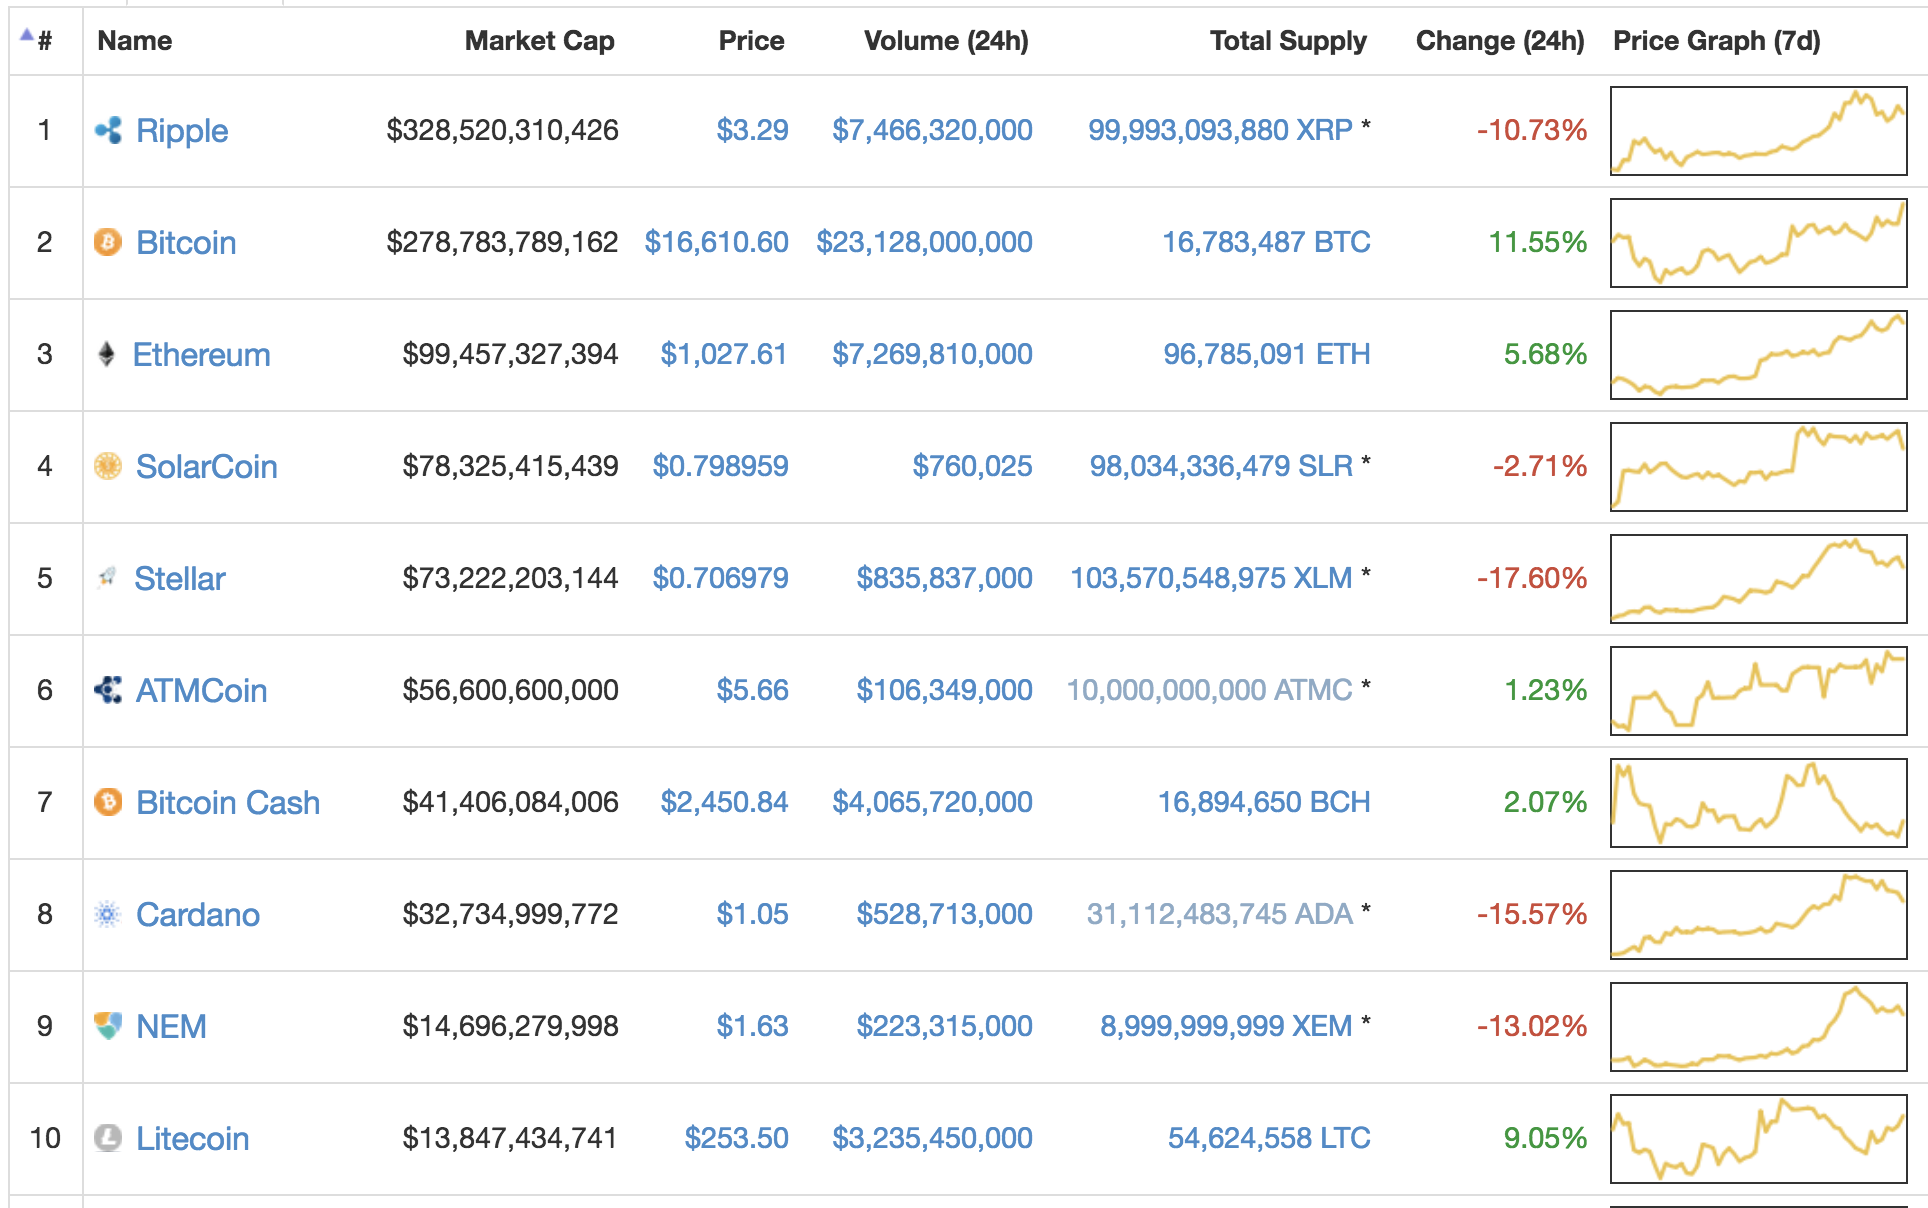 Top 10 Cryptocurrencies by Full Supply Market Capitalization